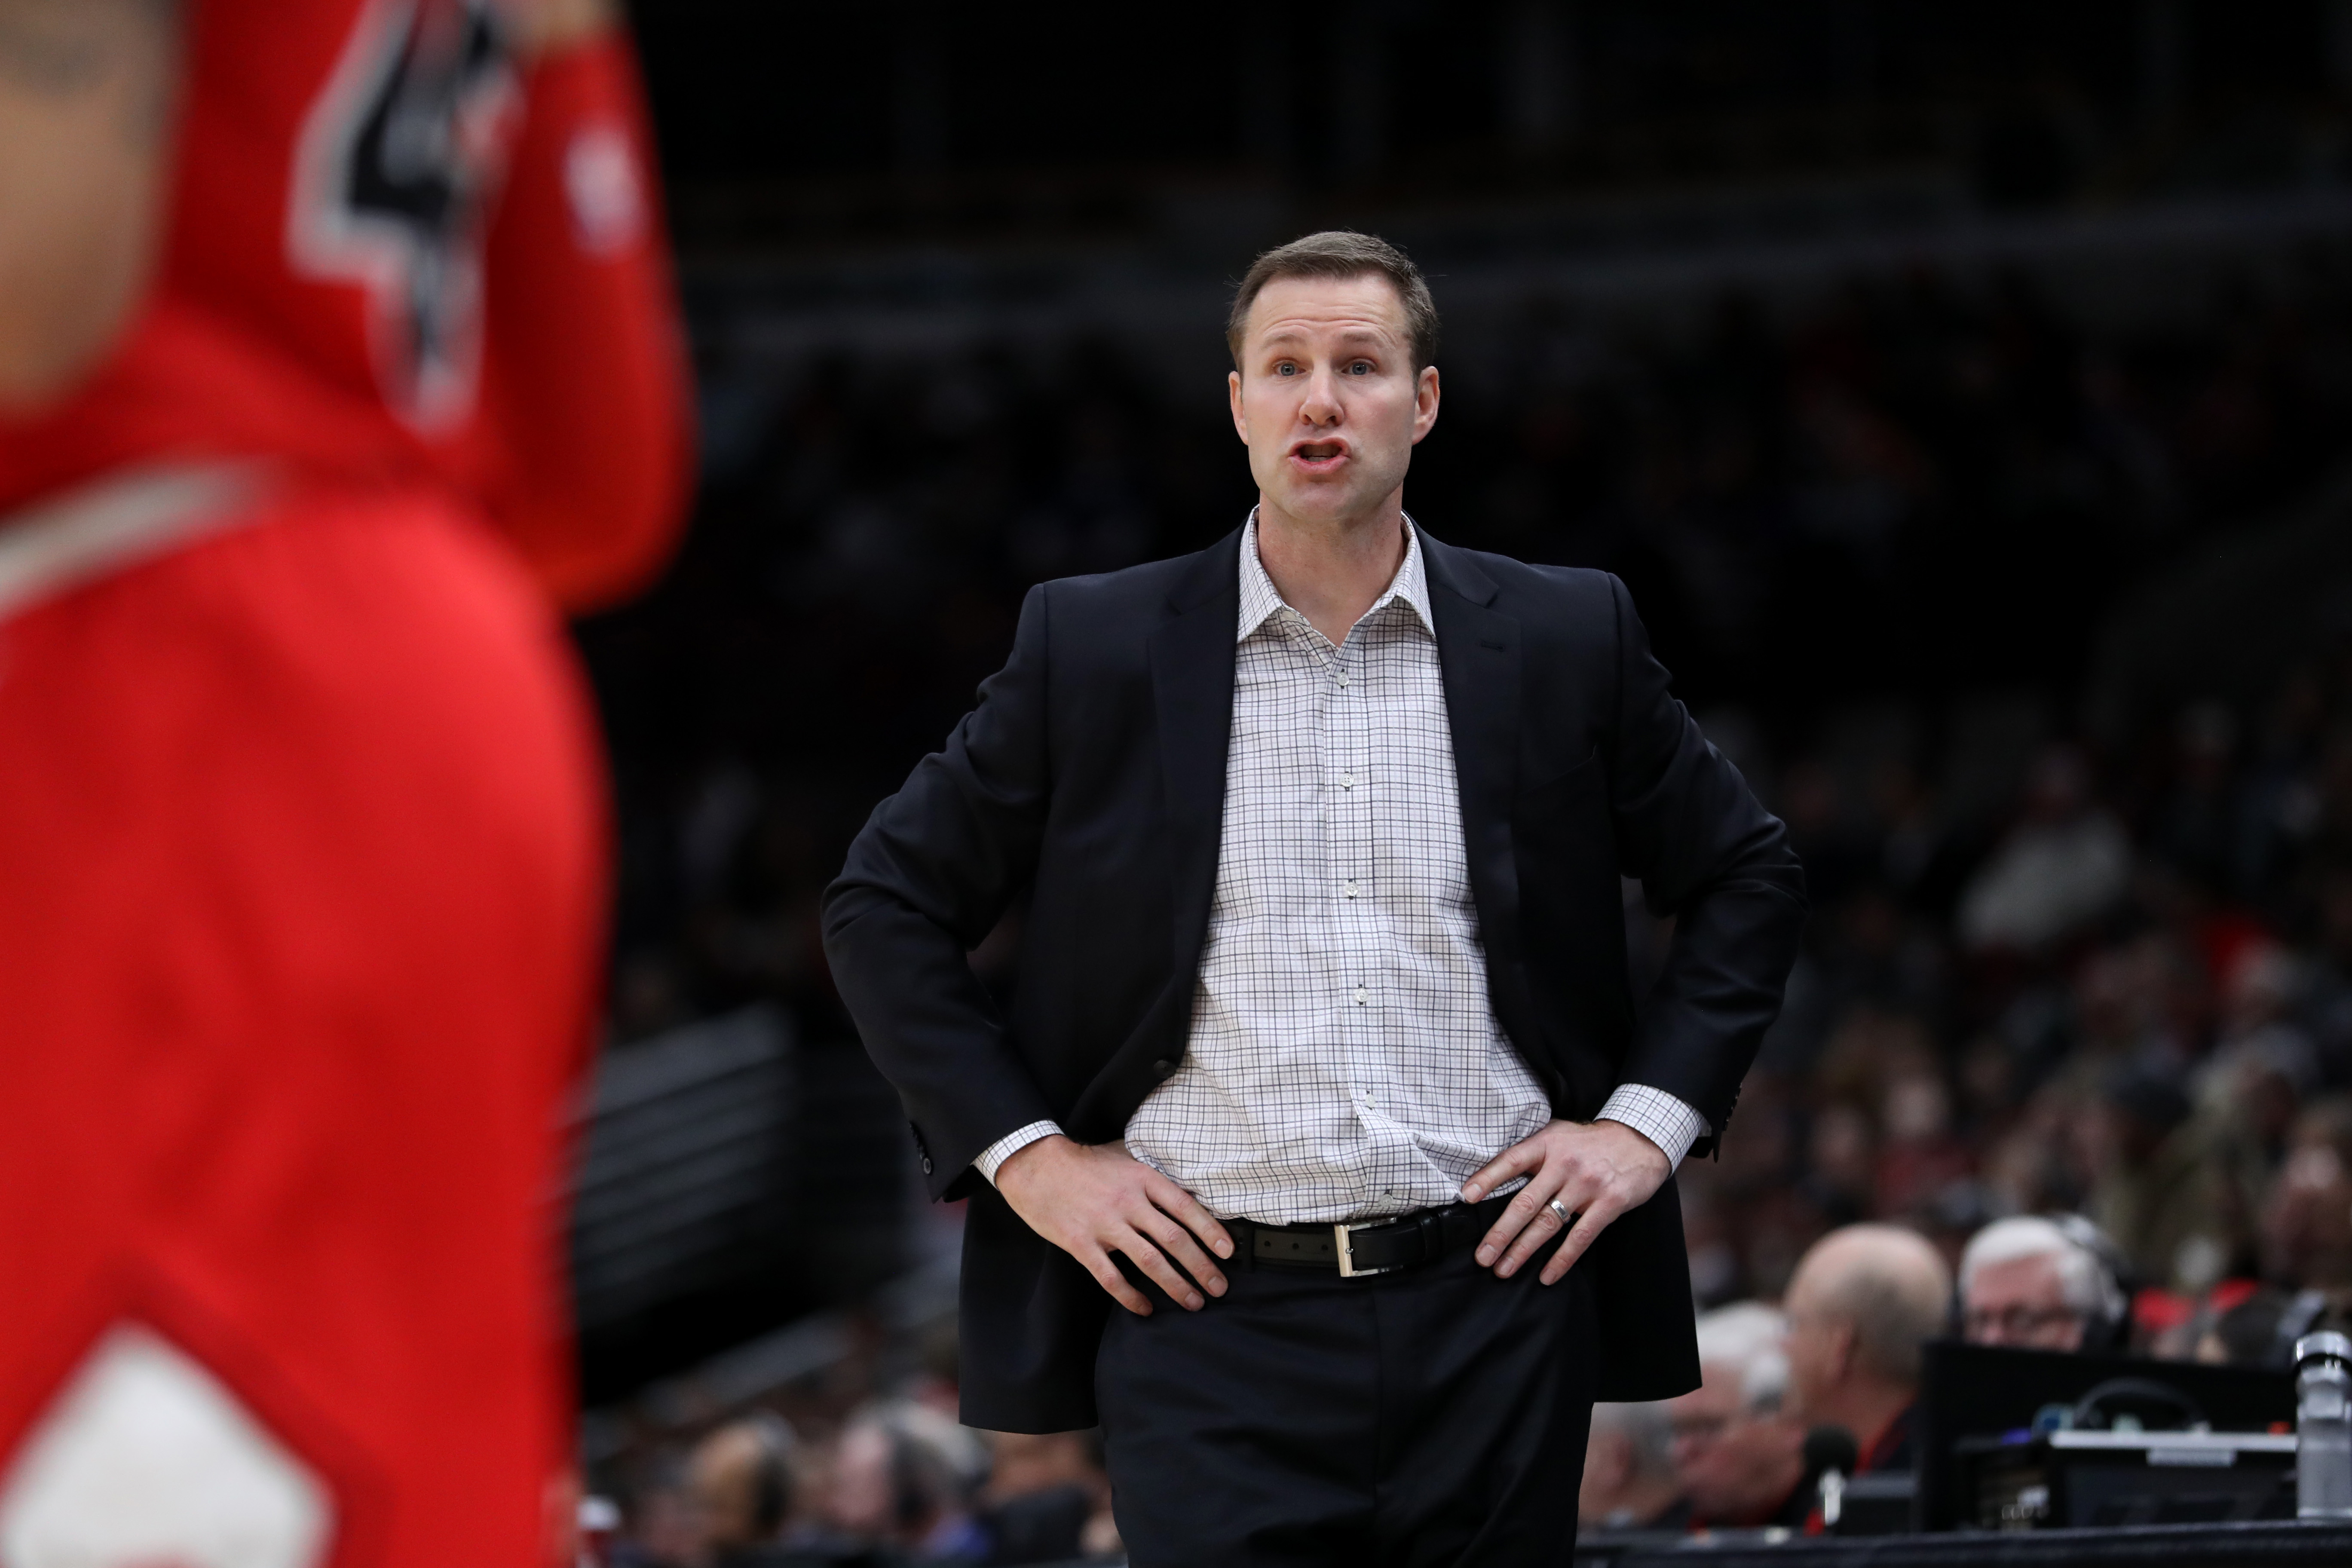 January 3, 2018 - Chicago, IL, USA - Chicago Bulls head coach Fred Hoiberg gives direction to his players in the first half against the Toronto Raptors at the United Center in Chicago on Wednesday January 3, 2018. The Raptors won, 124-115. (Credit Image: © Chris Sweda/TNS via ZUMA Wire)